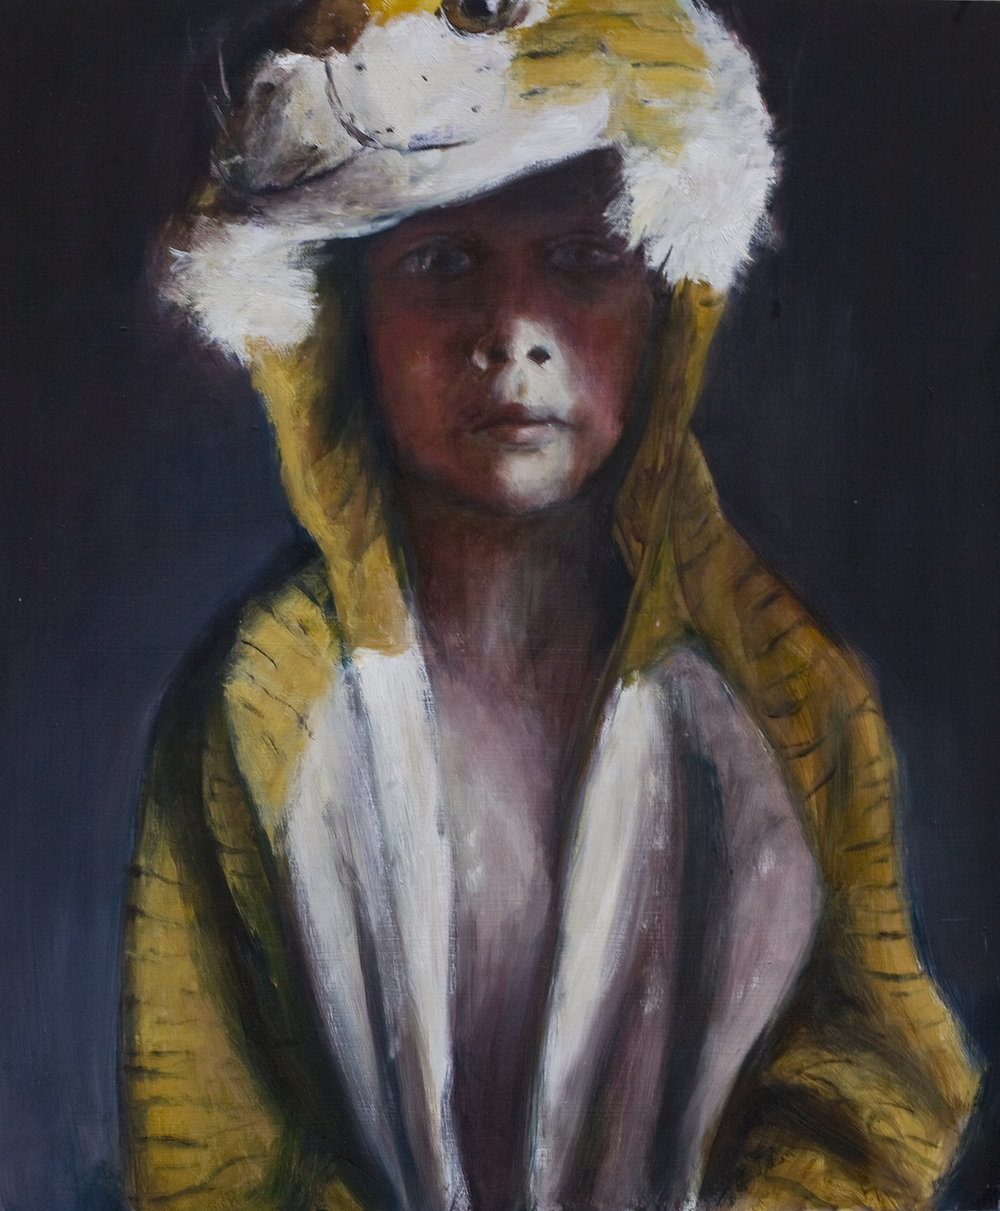 Boy with tiger suit  Oil on board 55x46 cm 2008